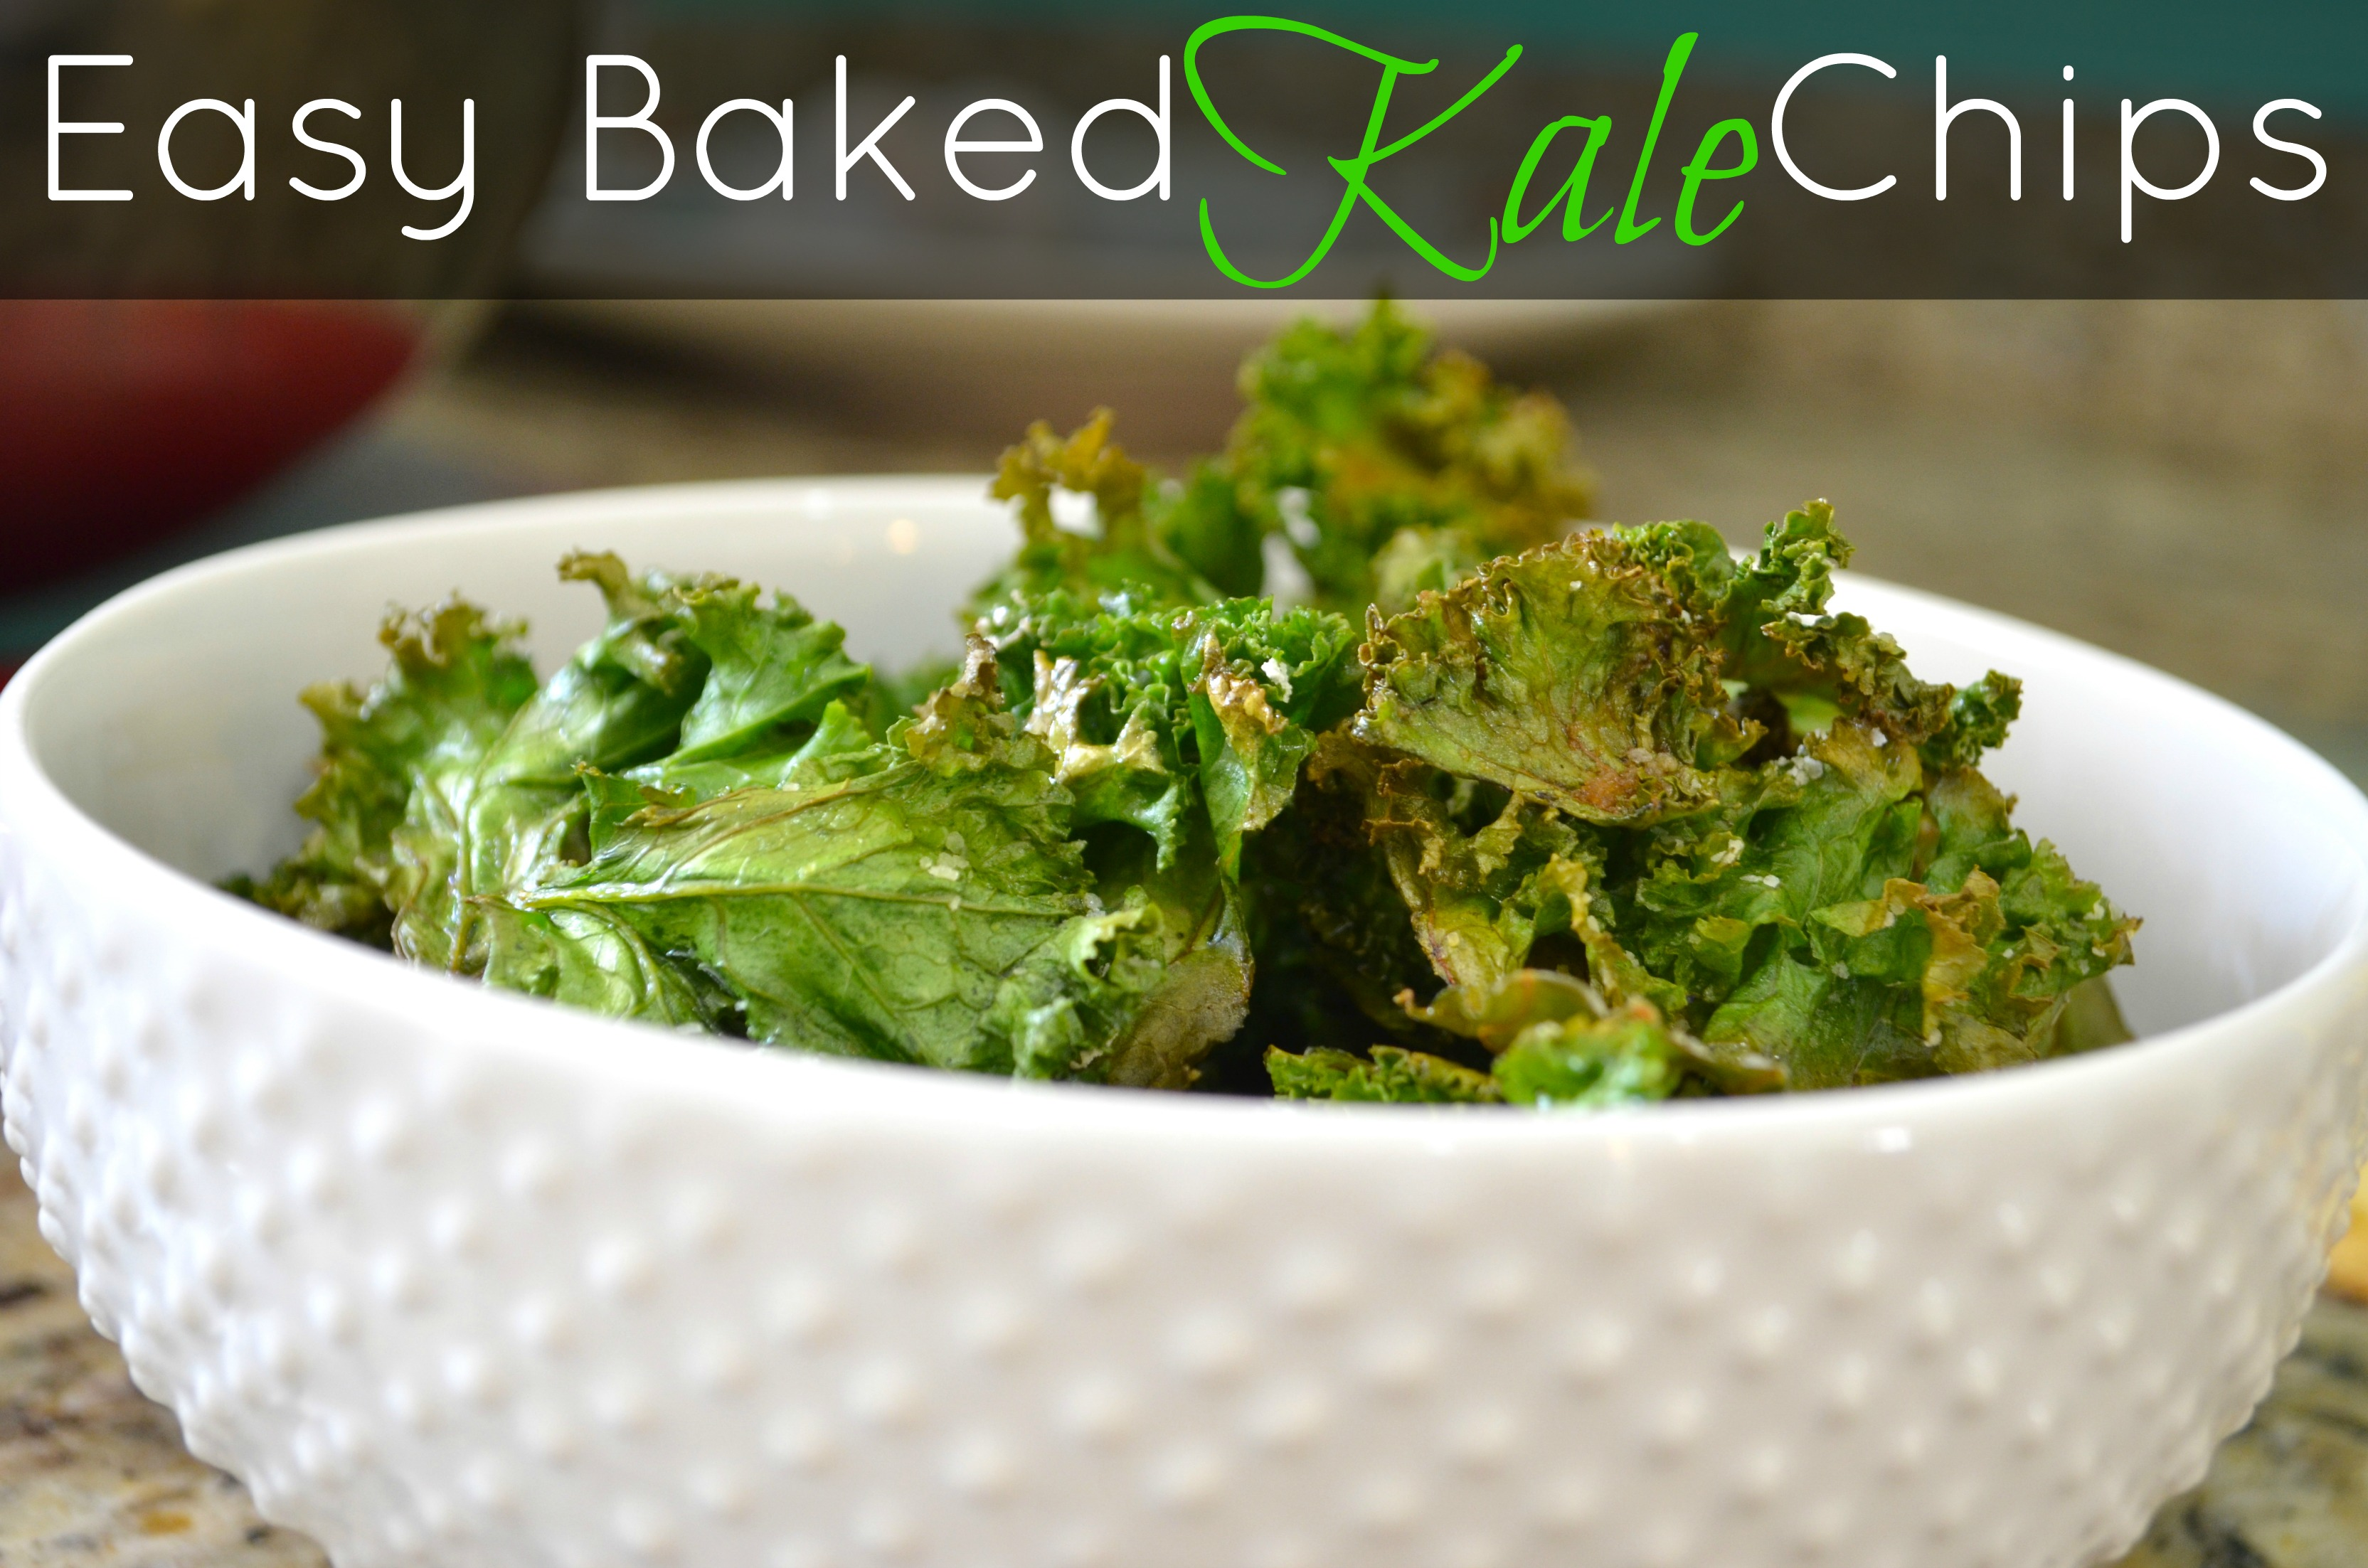 medicated-baked-kale-chips